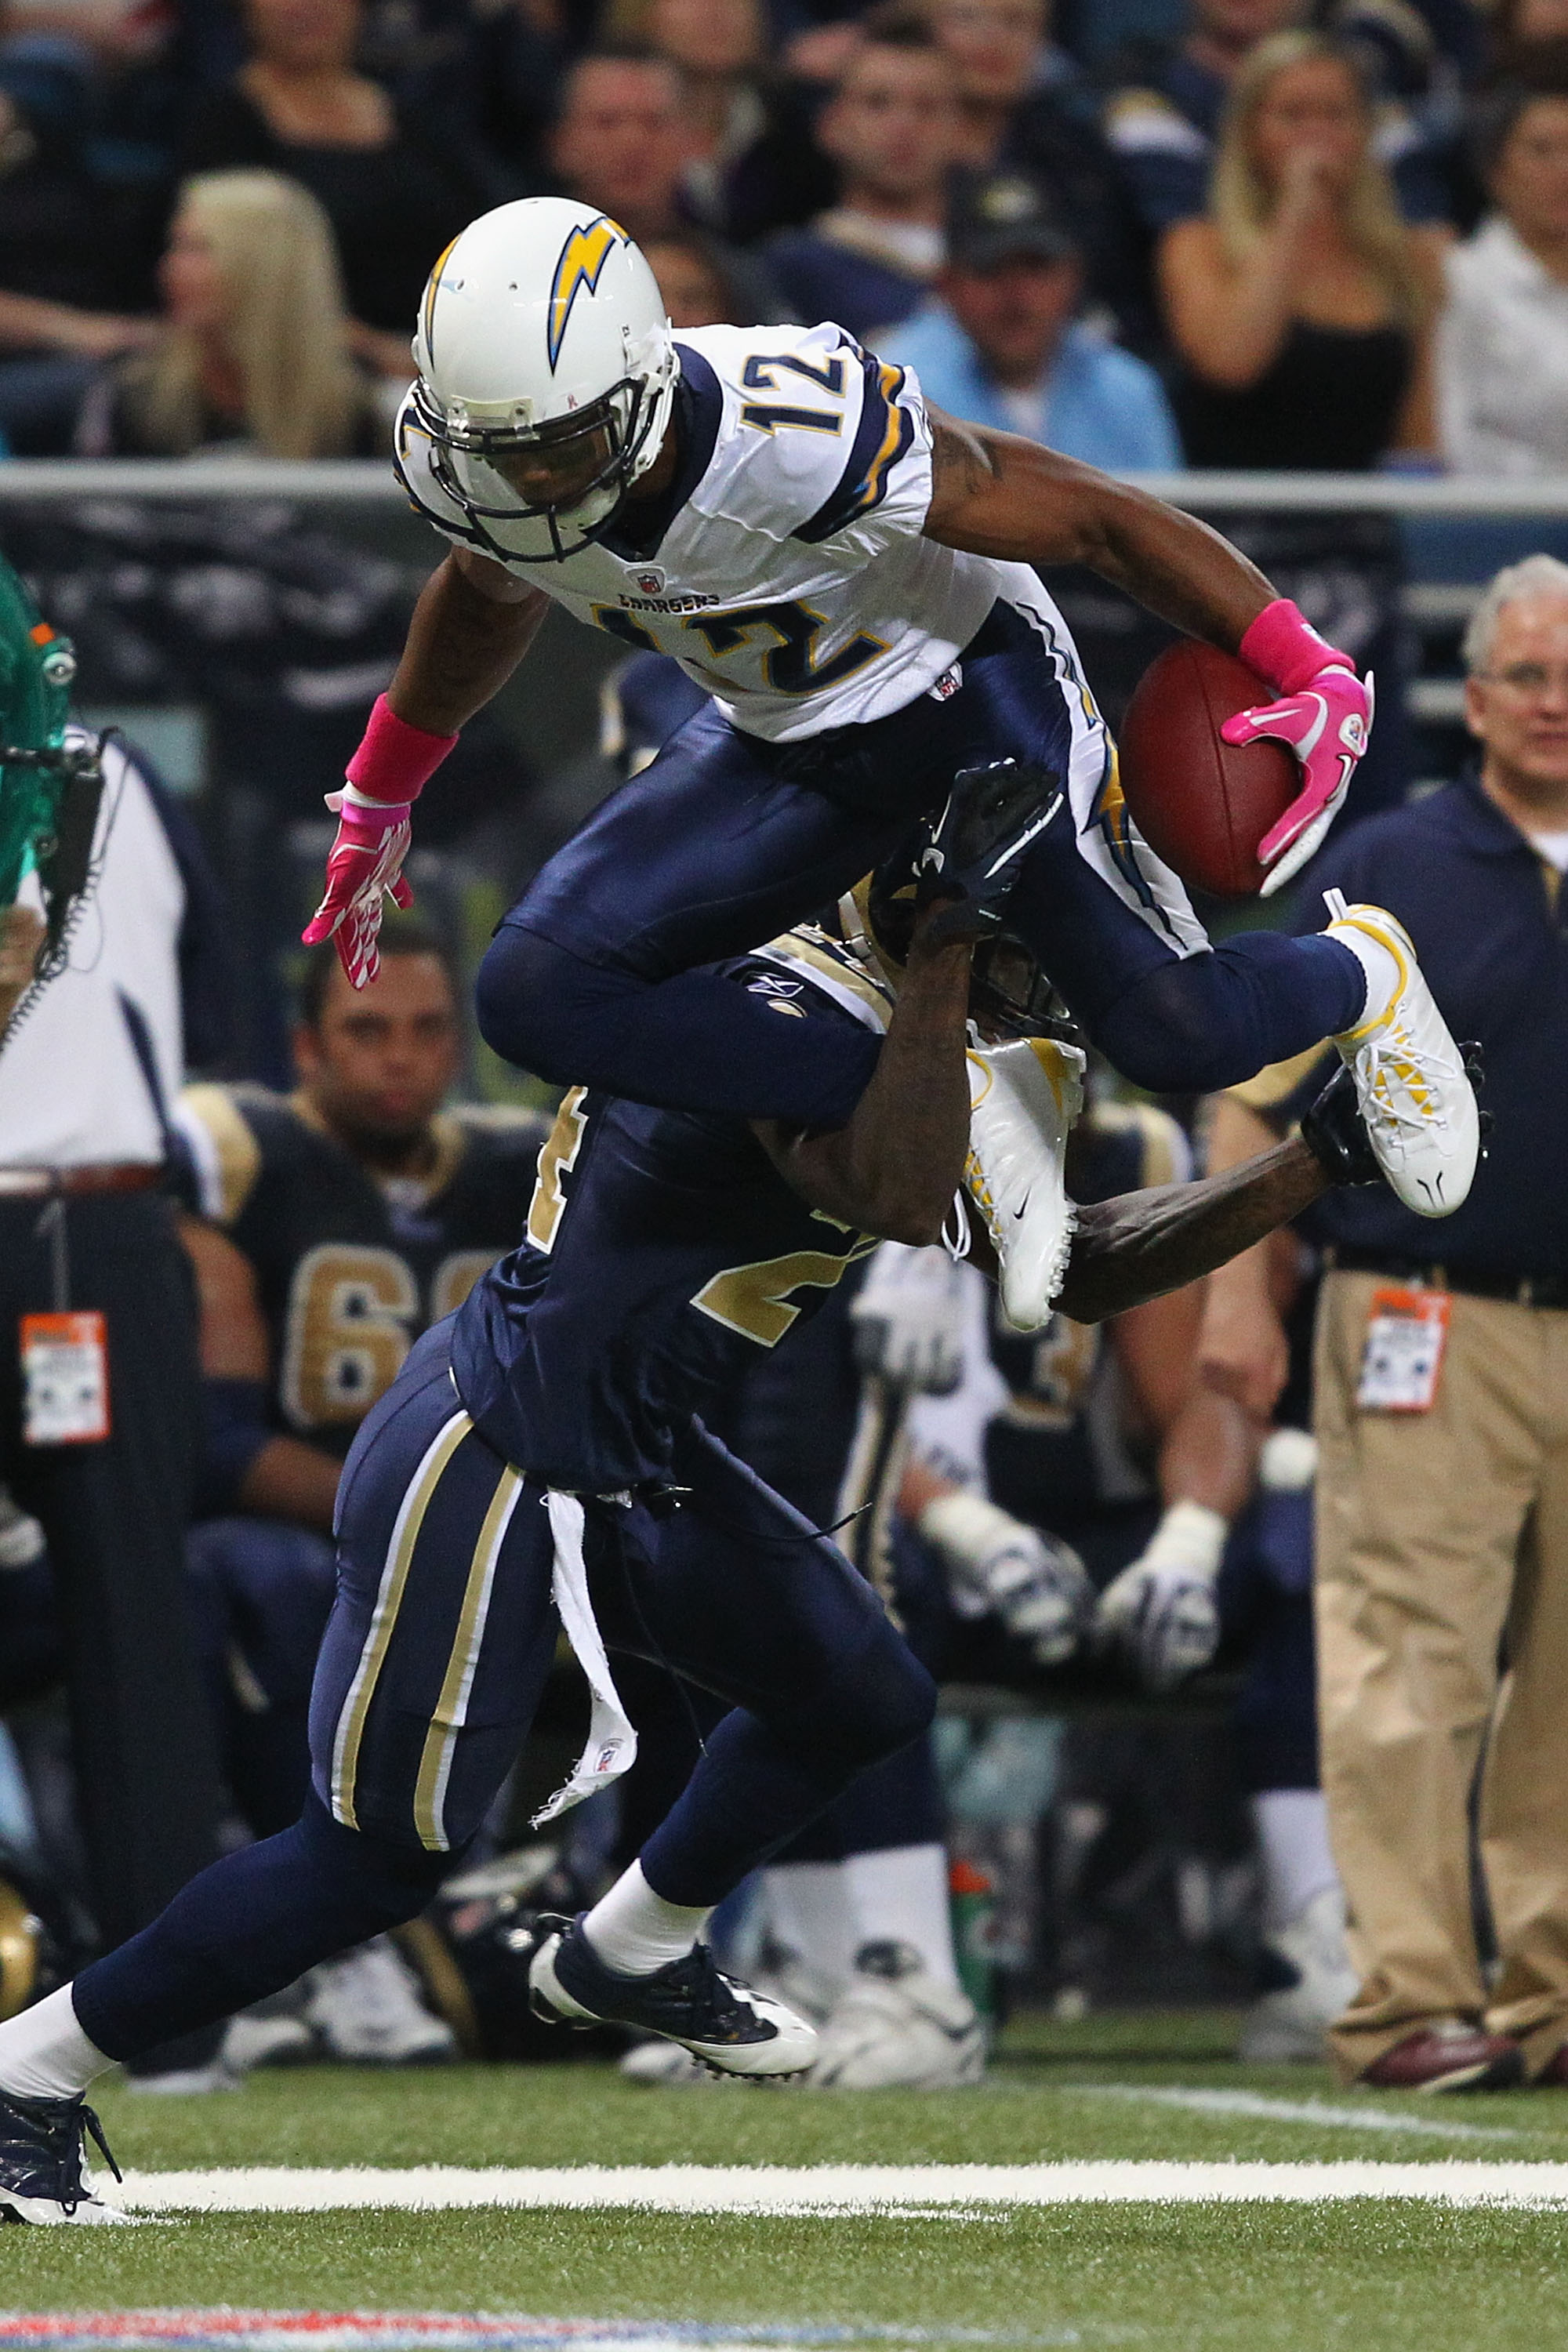 ST. LOUIS - OCTOBER 17: Patrick Crayton #12 of the San Diego Chargers leaps over Ronald Bartell #24 of the St. Louis Rams at the Edward Jones Dome on October 17, 2010 in St. Louis, Missouri.  The Rams beat the Chargers 20-17.  (Photo by Dilip Vishwanat/Ge